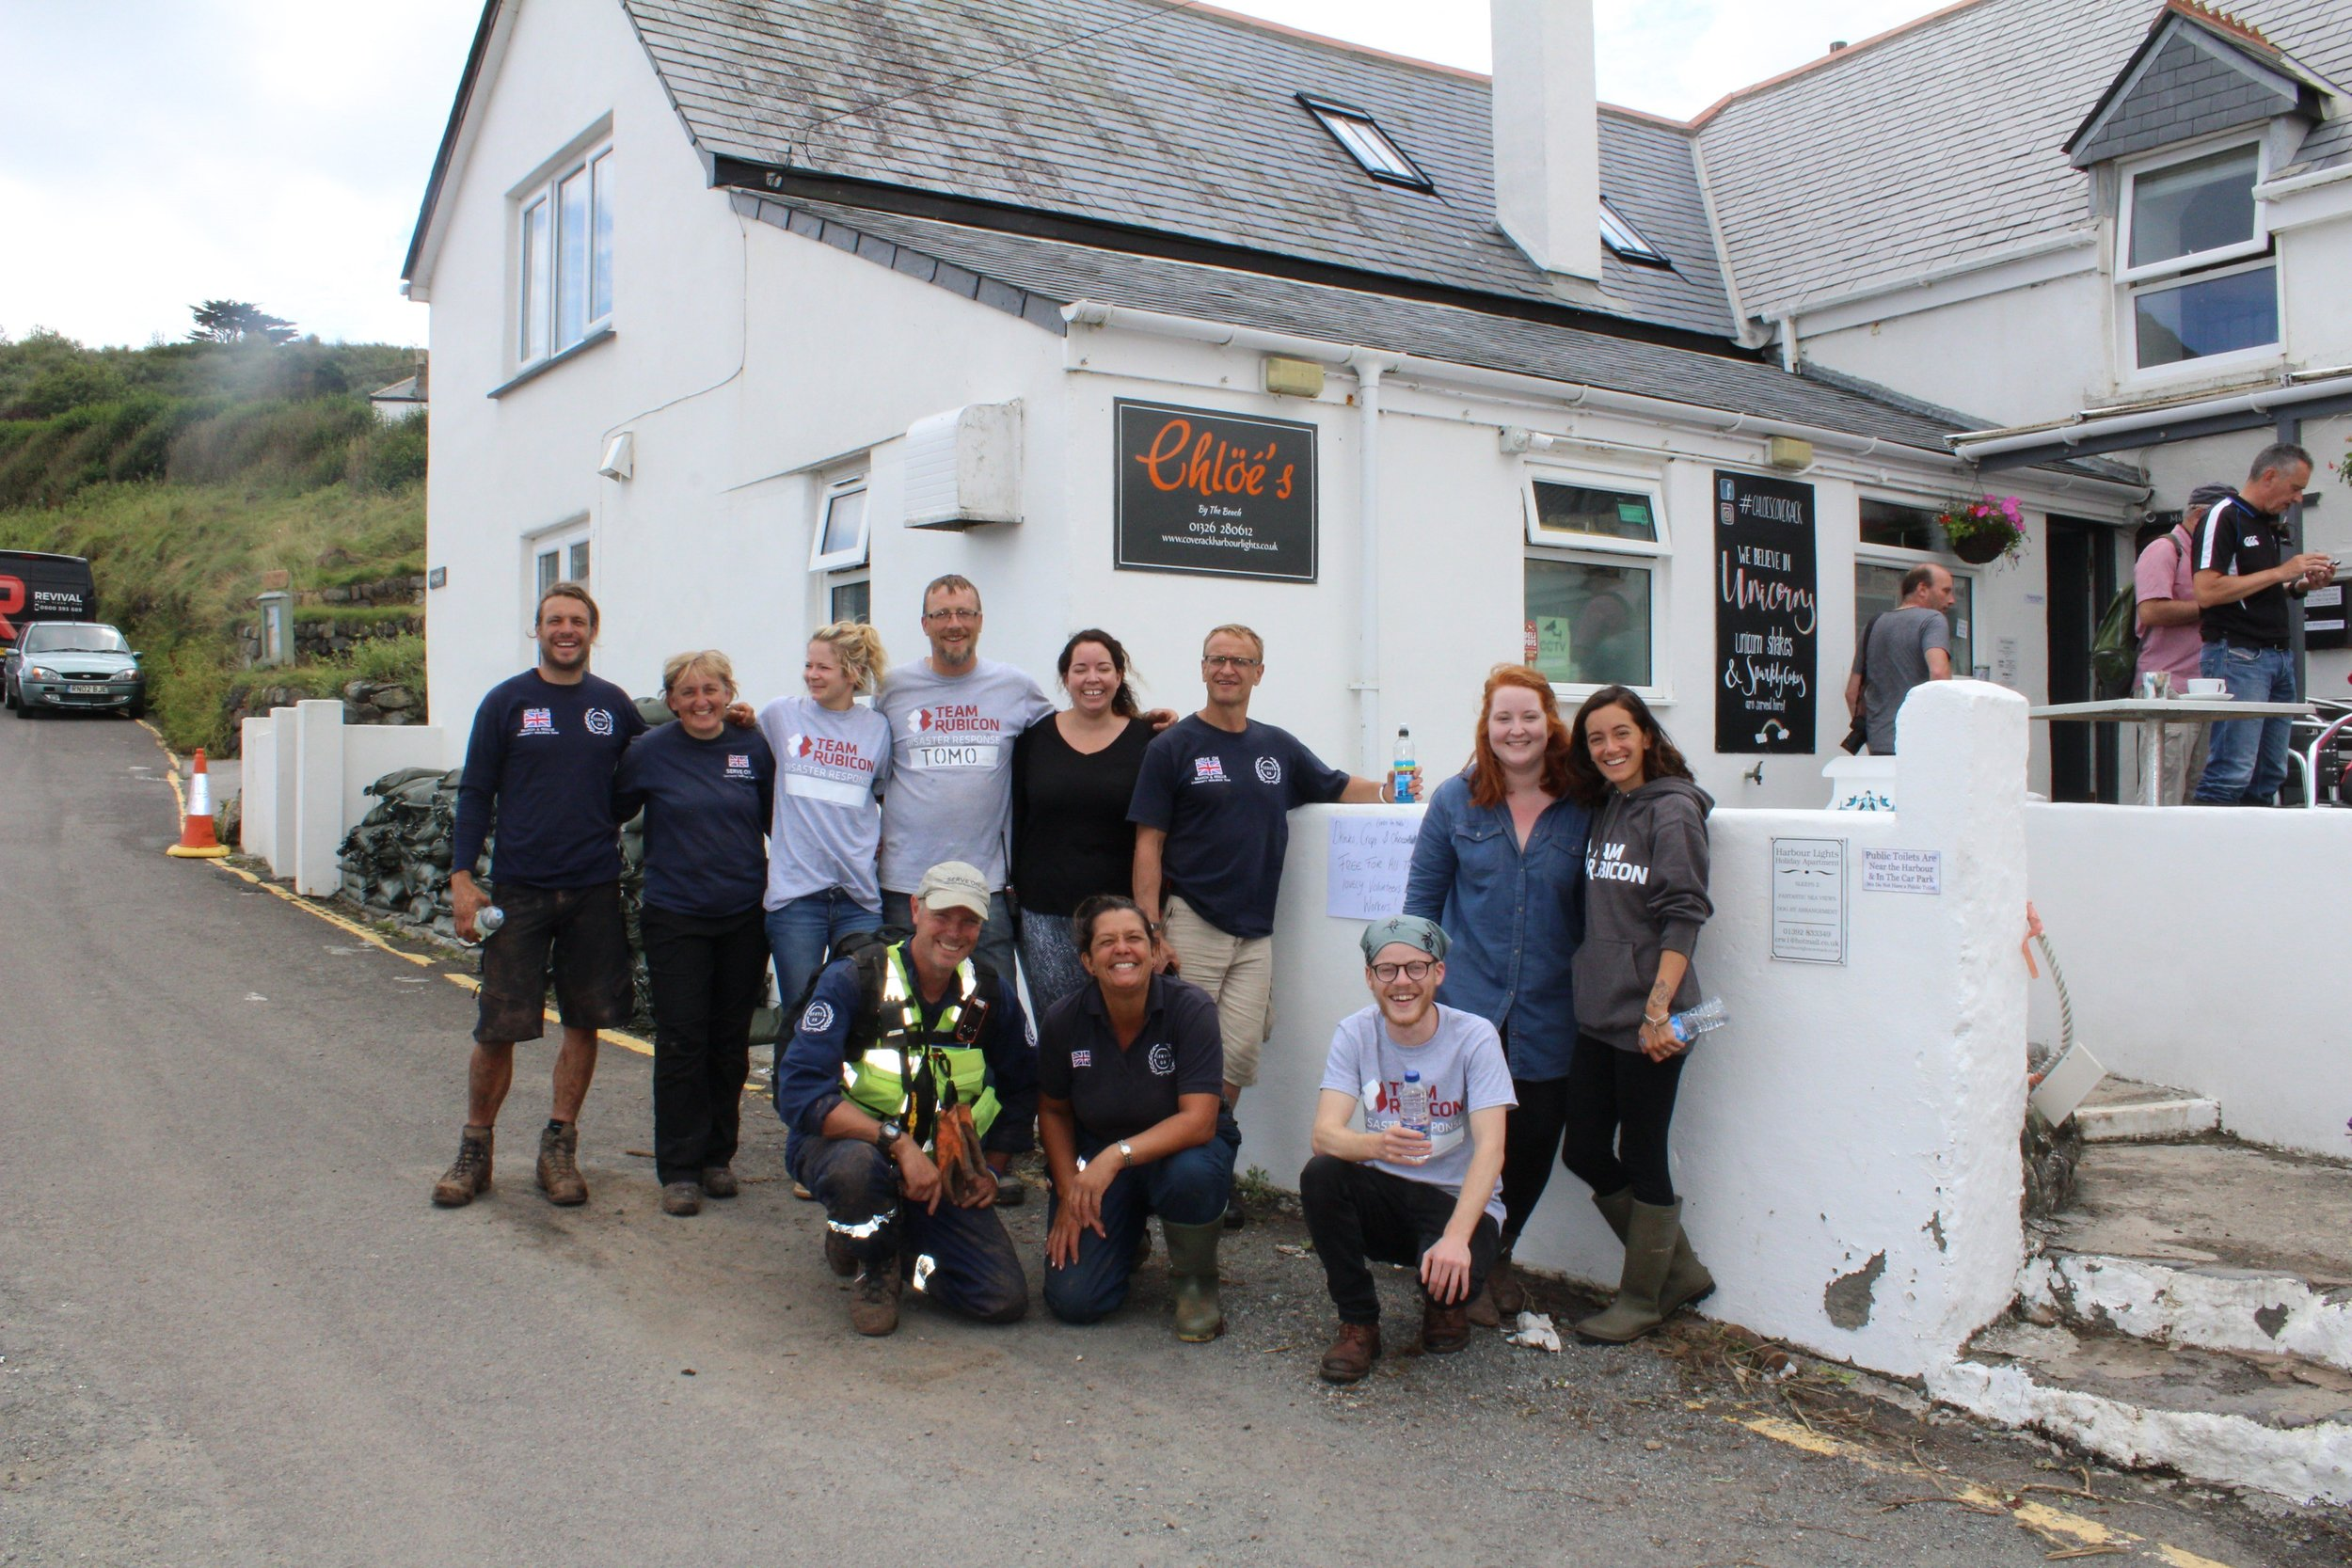 Helen Littlejohn with other Serve On and Team Rubicon volunteers outside Chloe's cafe